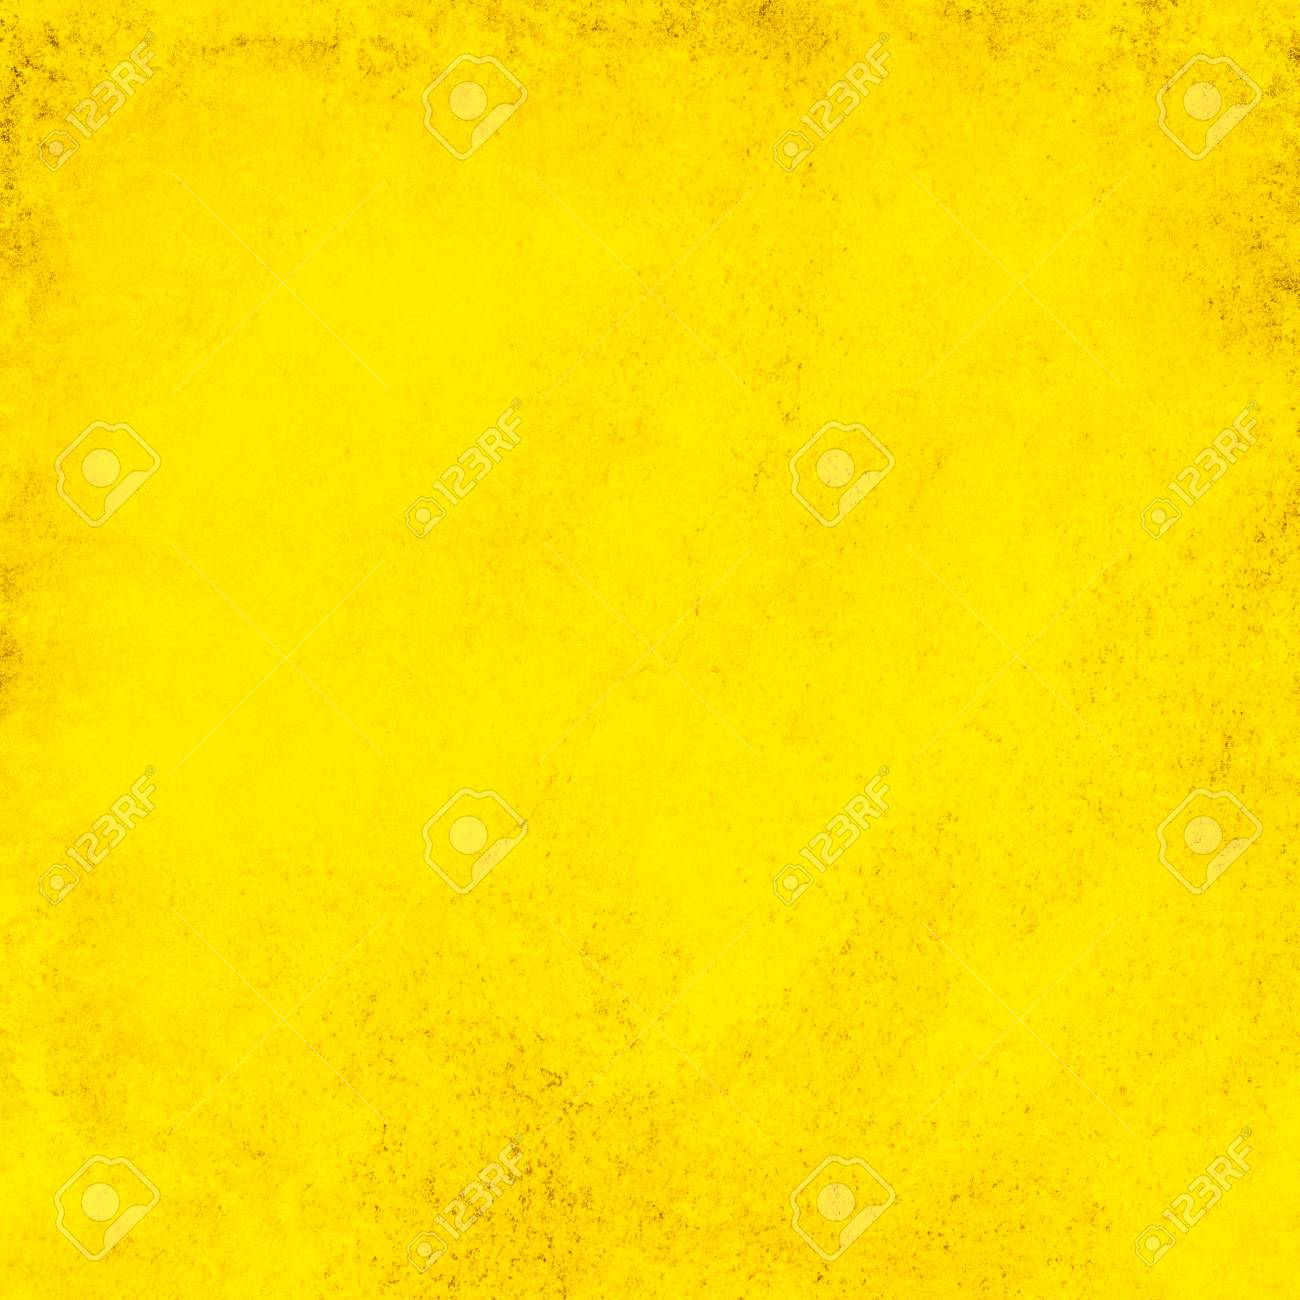 abstract yellow background texture - 124741431